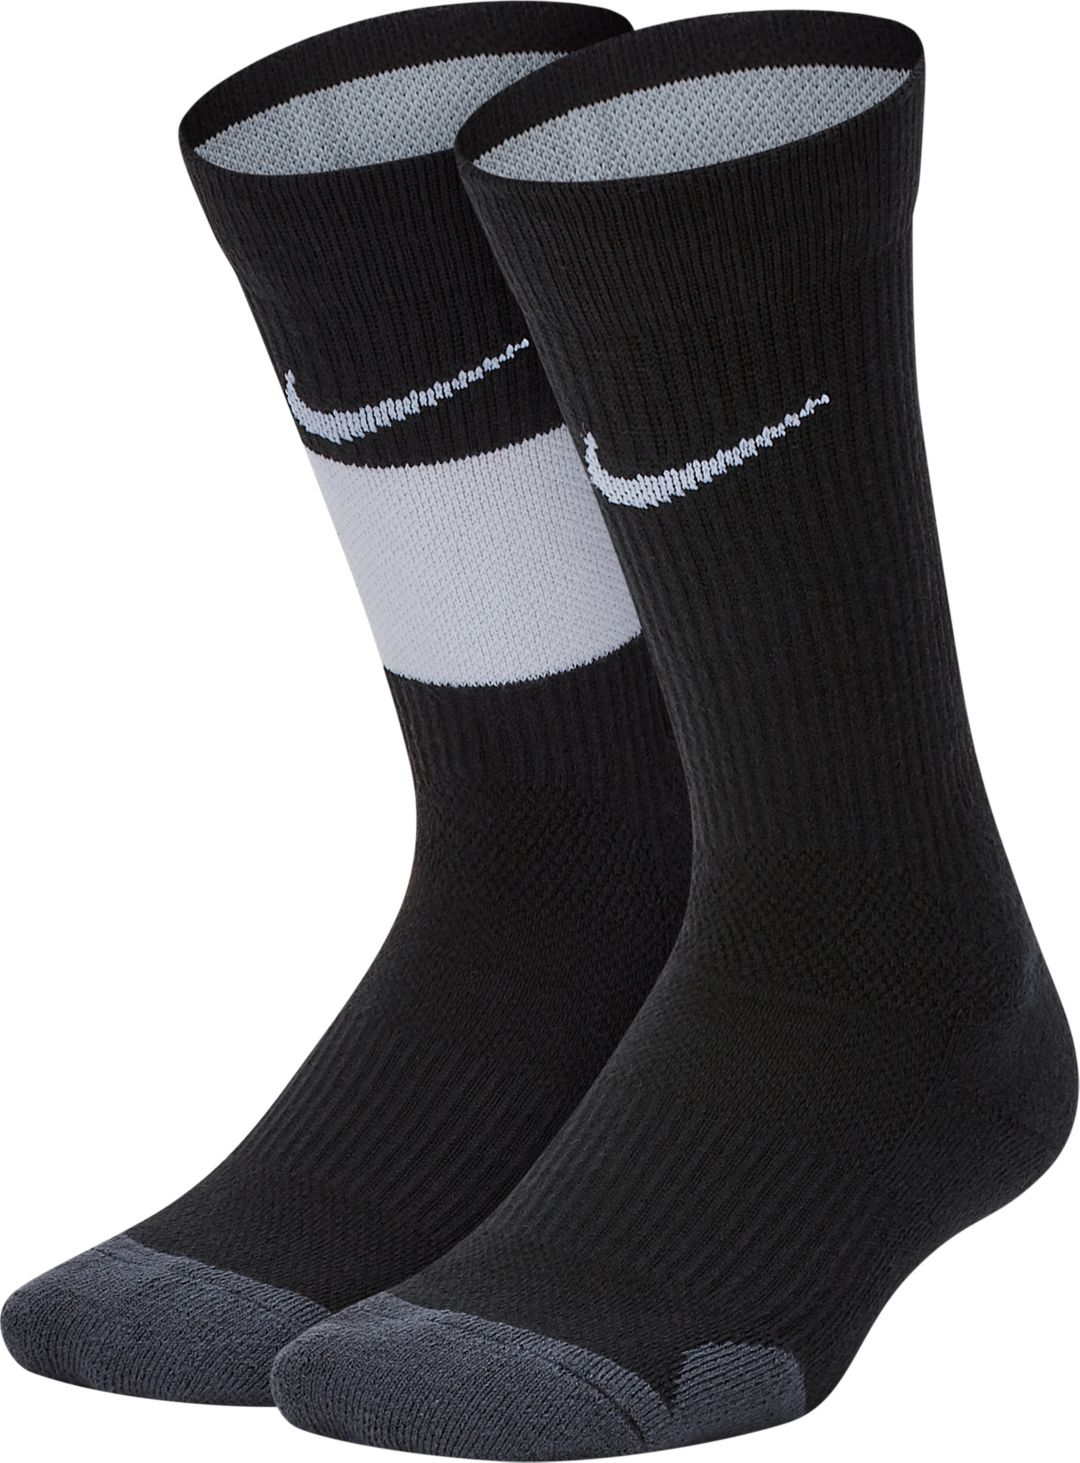 reputable site 60f5a d4a5d Nike Youth Elite Basketball Crew Socks 2 Pack 1